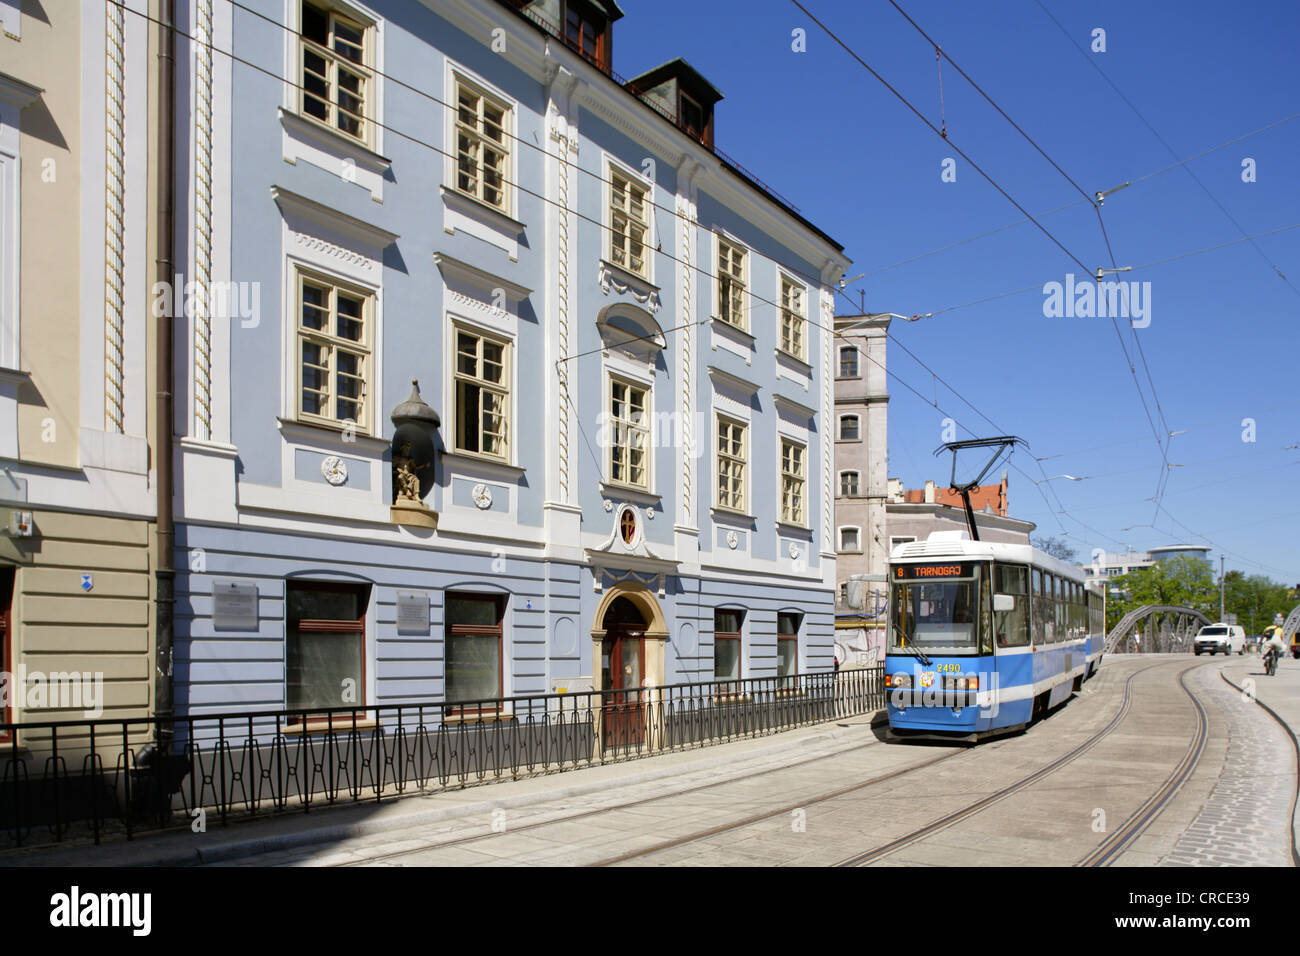 Tram in the Wyspa Piasek district, Wroclaw (Breslau), Poland. Stock Photo